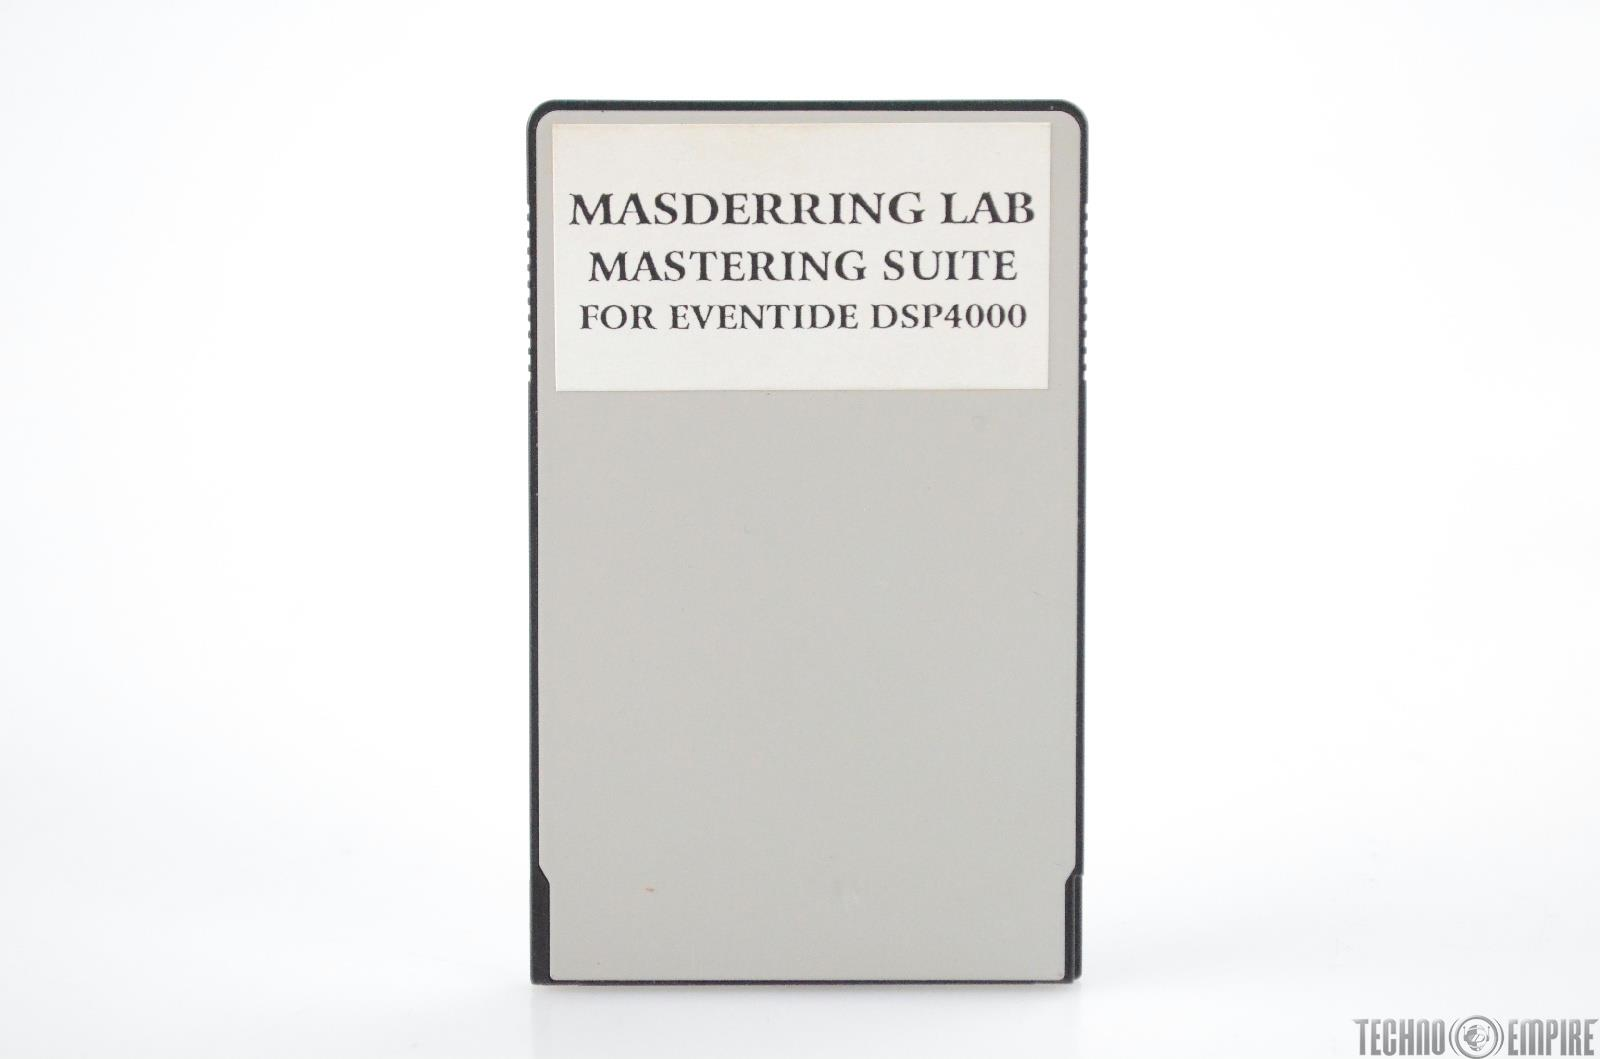 Eventide Masderring Lab Mastering Suite & Alchemy Preset Card for DSP4000 #31177